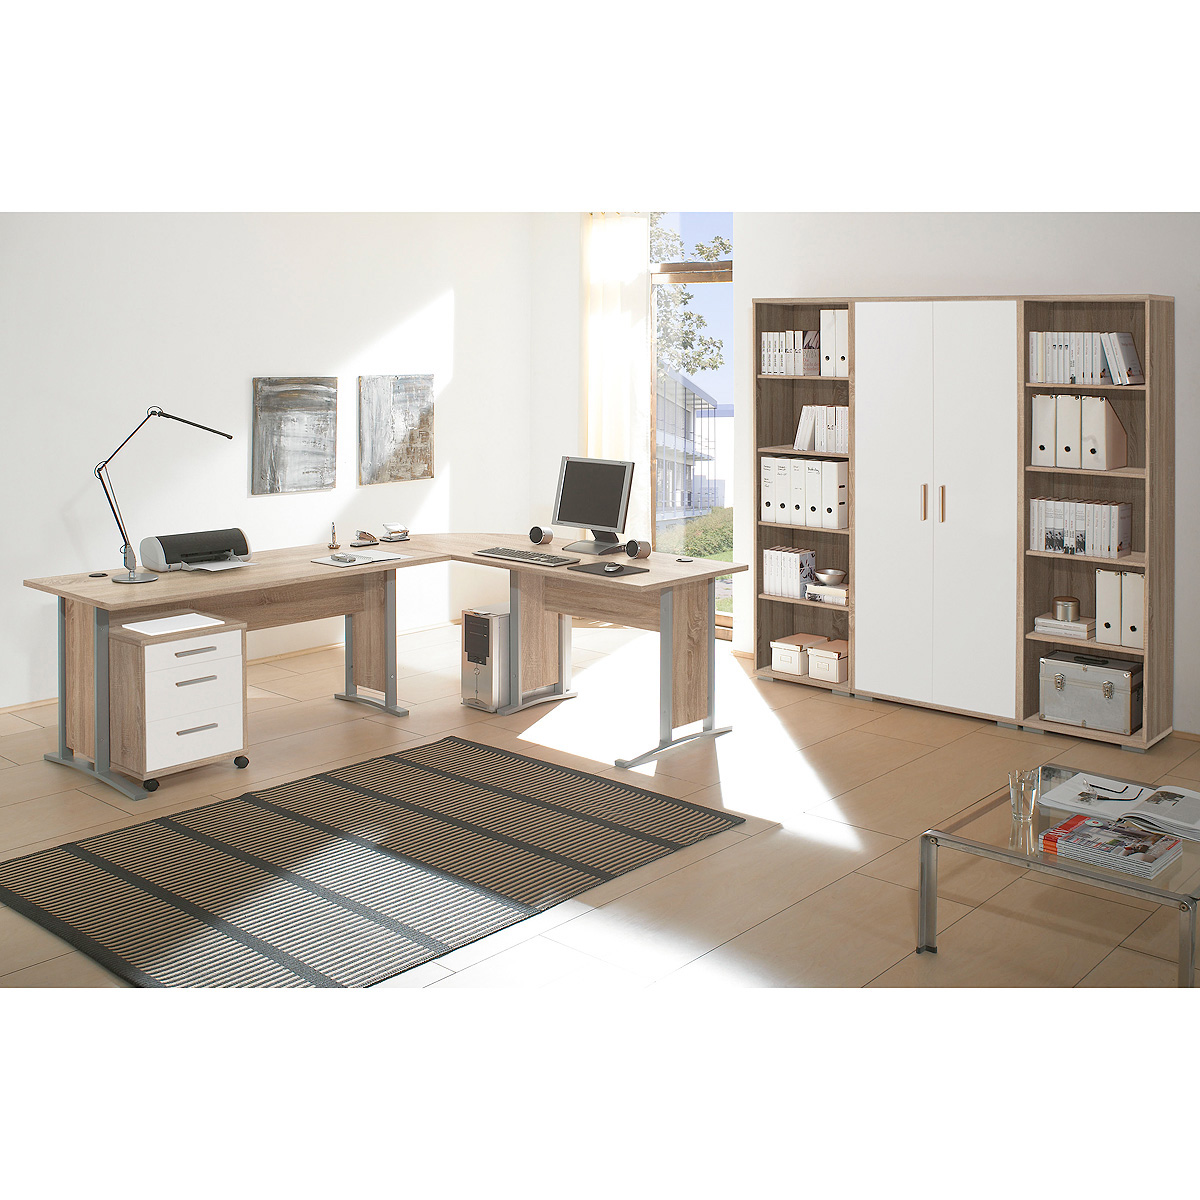 b ro set office line biz schreibtisch regal container in sonoma eiche wei ebay. Black Bedroom Furniture Sets. Home Design Ideas